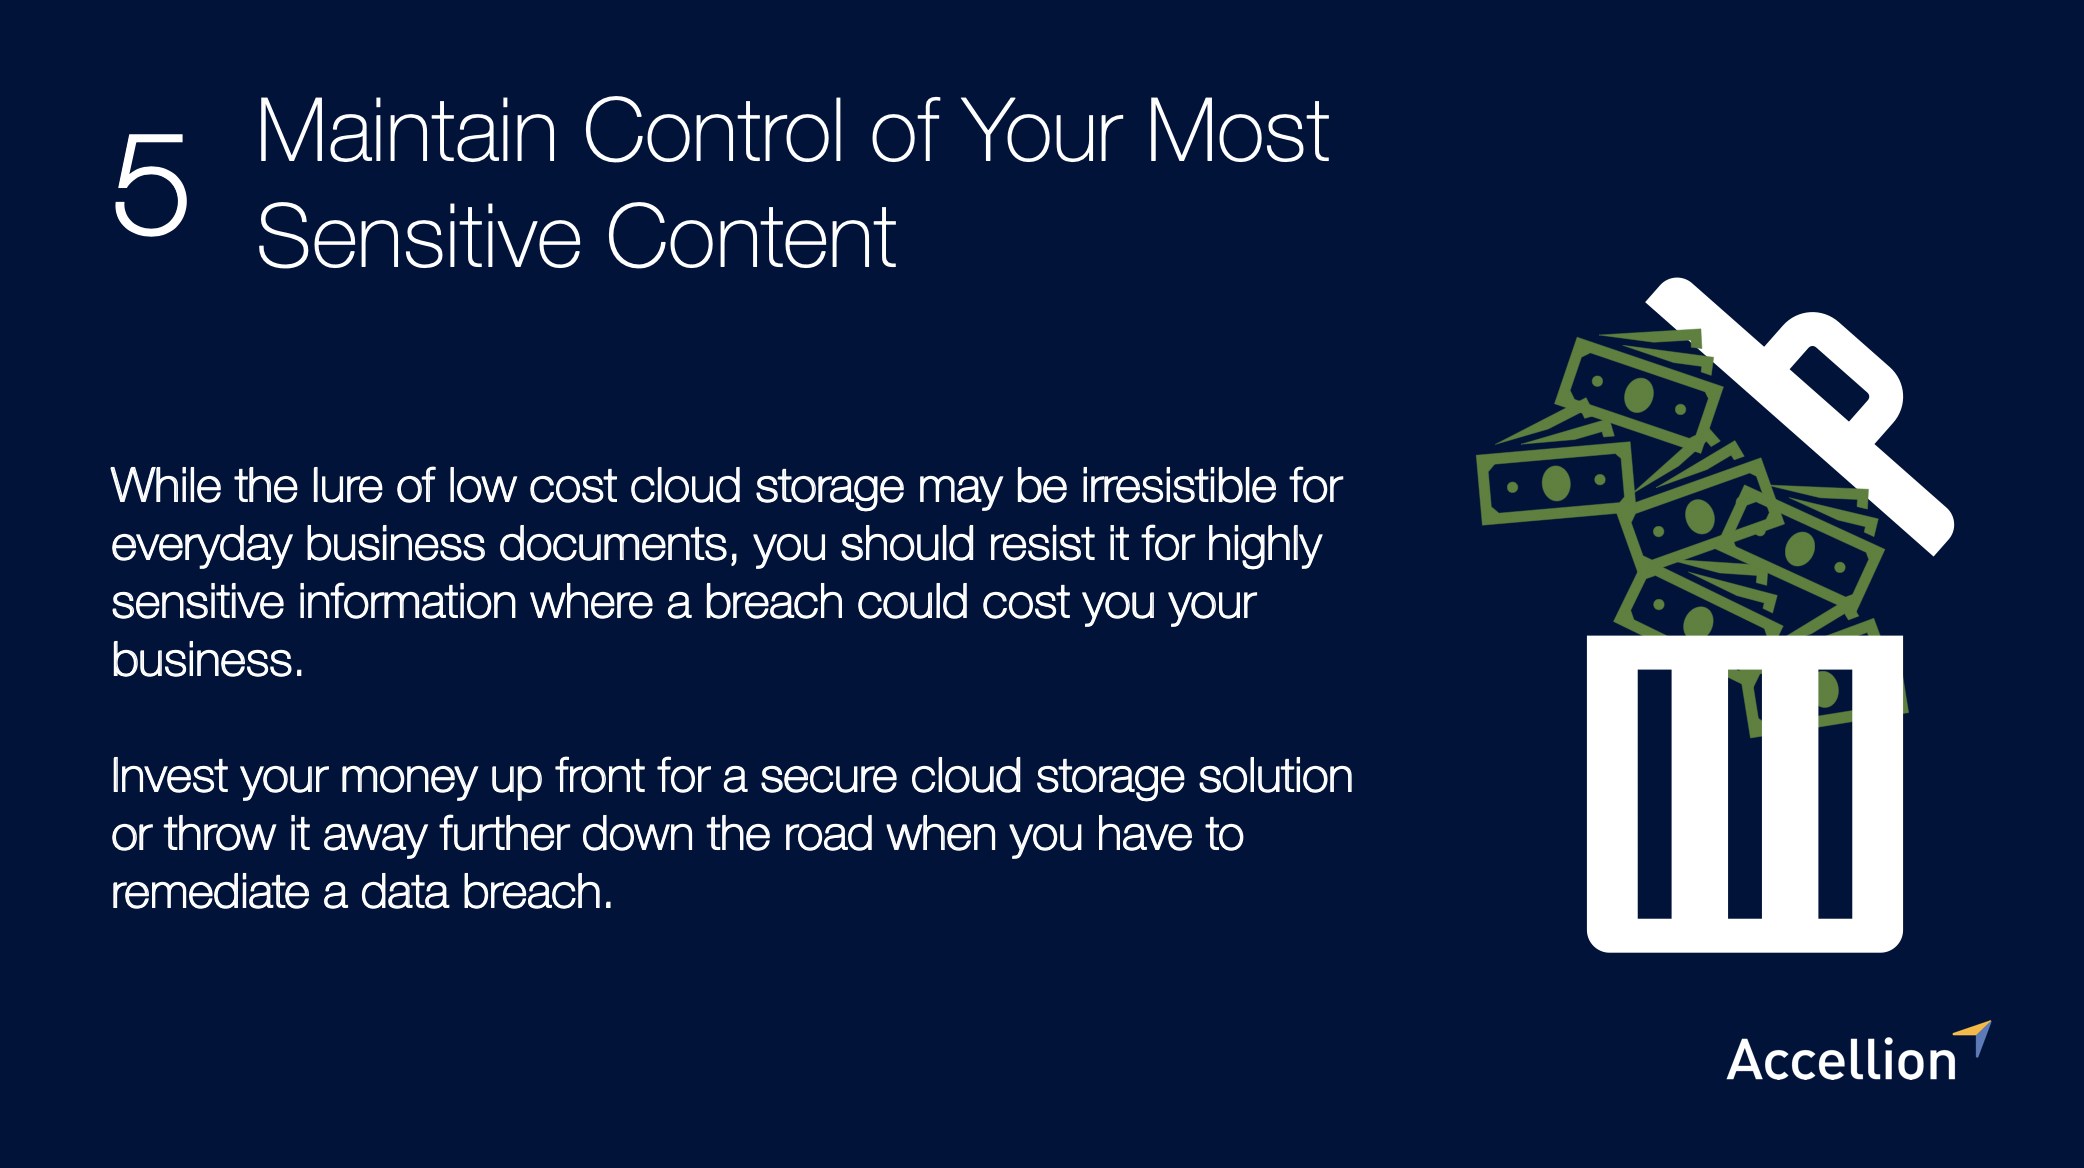 Invest money in secure cloud storage now, or throw it away later